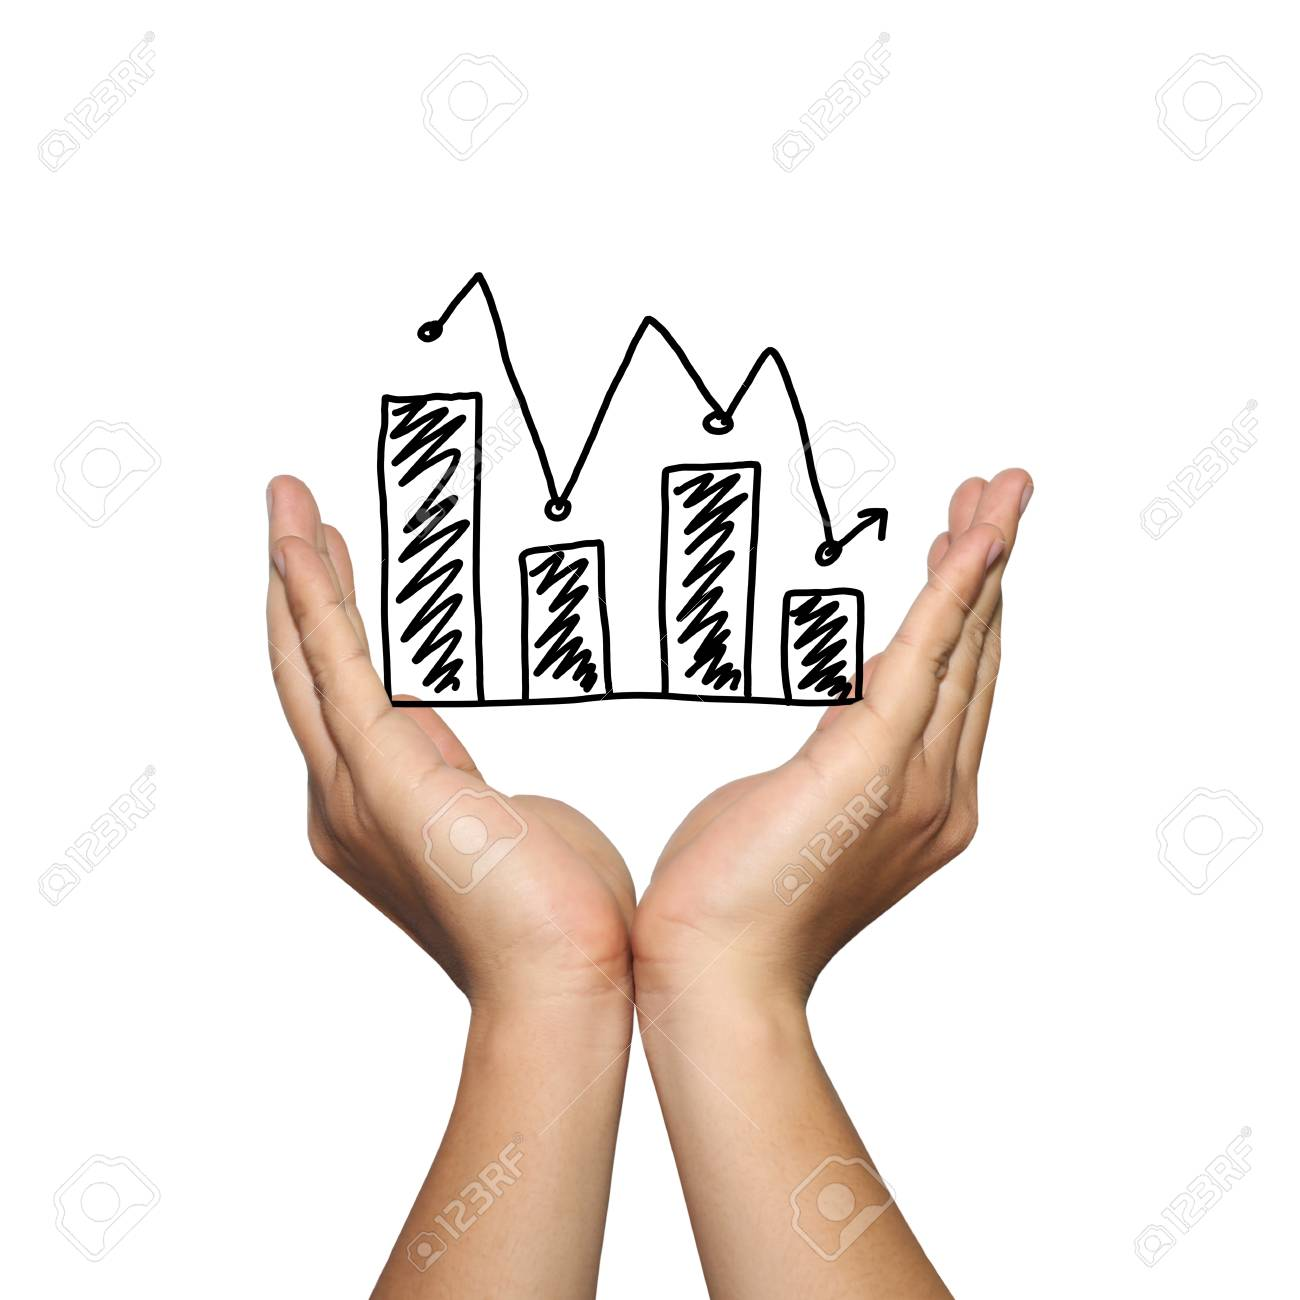 Symbol Of Business Bar Graph Downward Trend On Man Hand In Concept